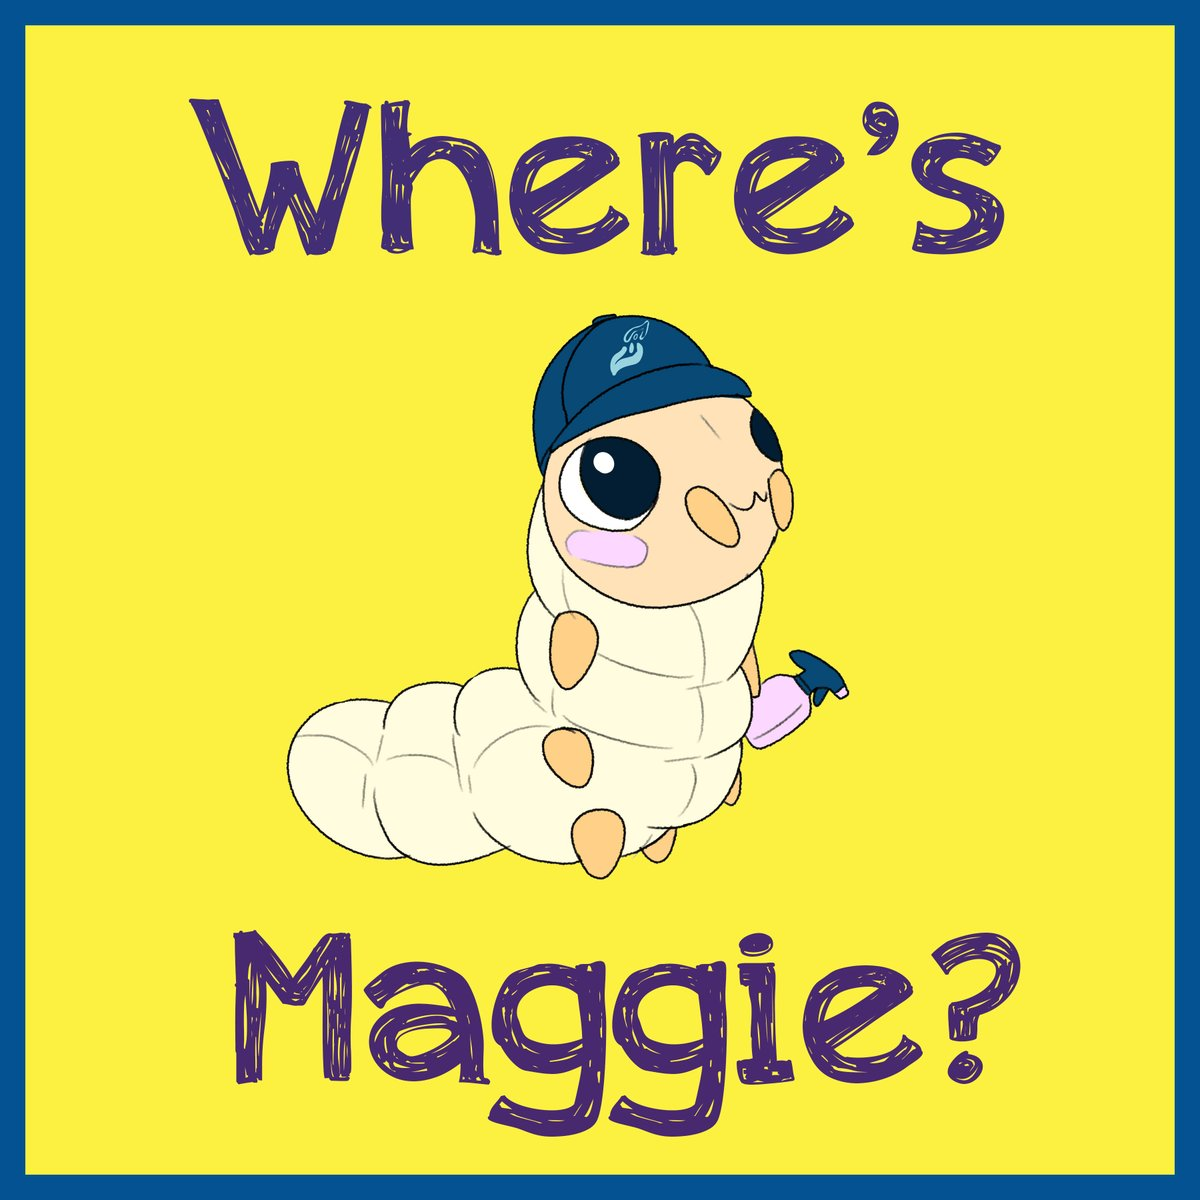 Looks like we lost Maggie in a massive hoard. Can you help us find her? #spauldingdecon #game #spaulding #decon #crimescenecleaners #crimescenecleanup #hoard #hoarders #hoarding #extremecleaning #wheresmaggie https://t.co/vxPznlNnsa